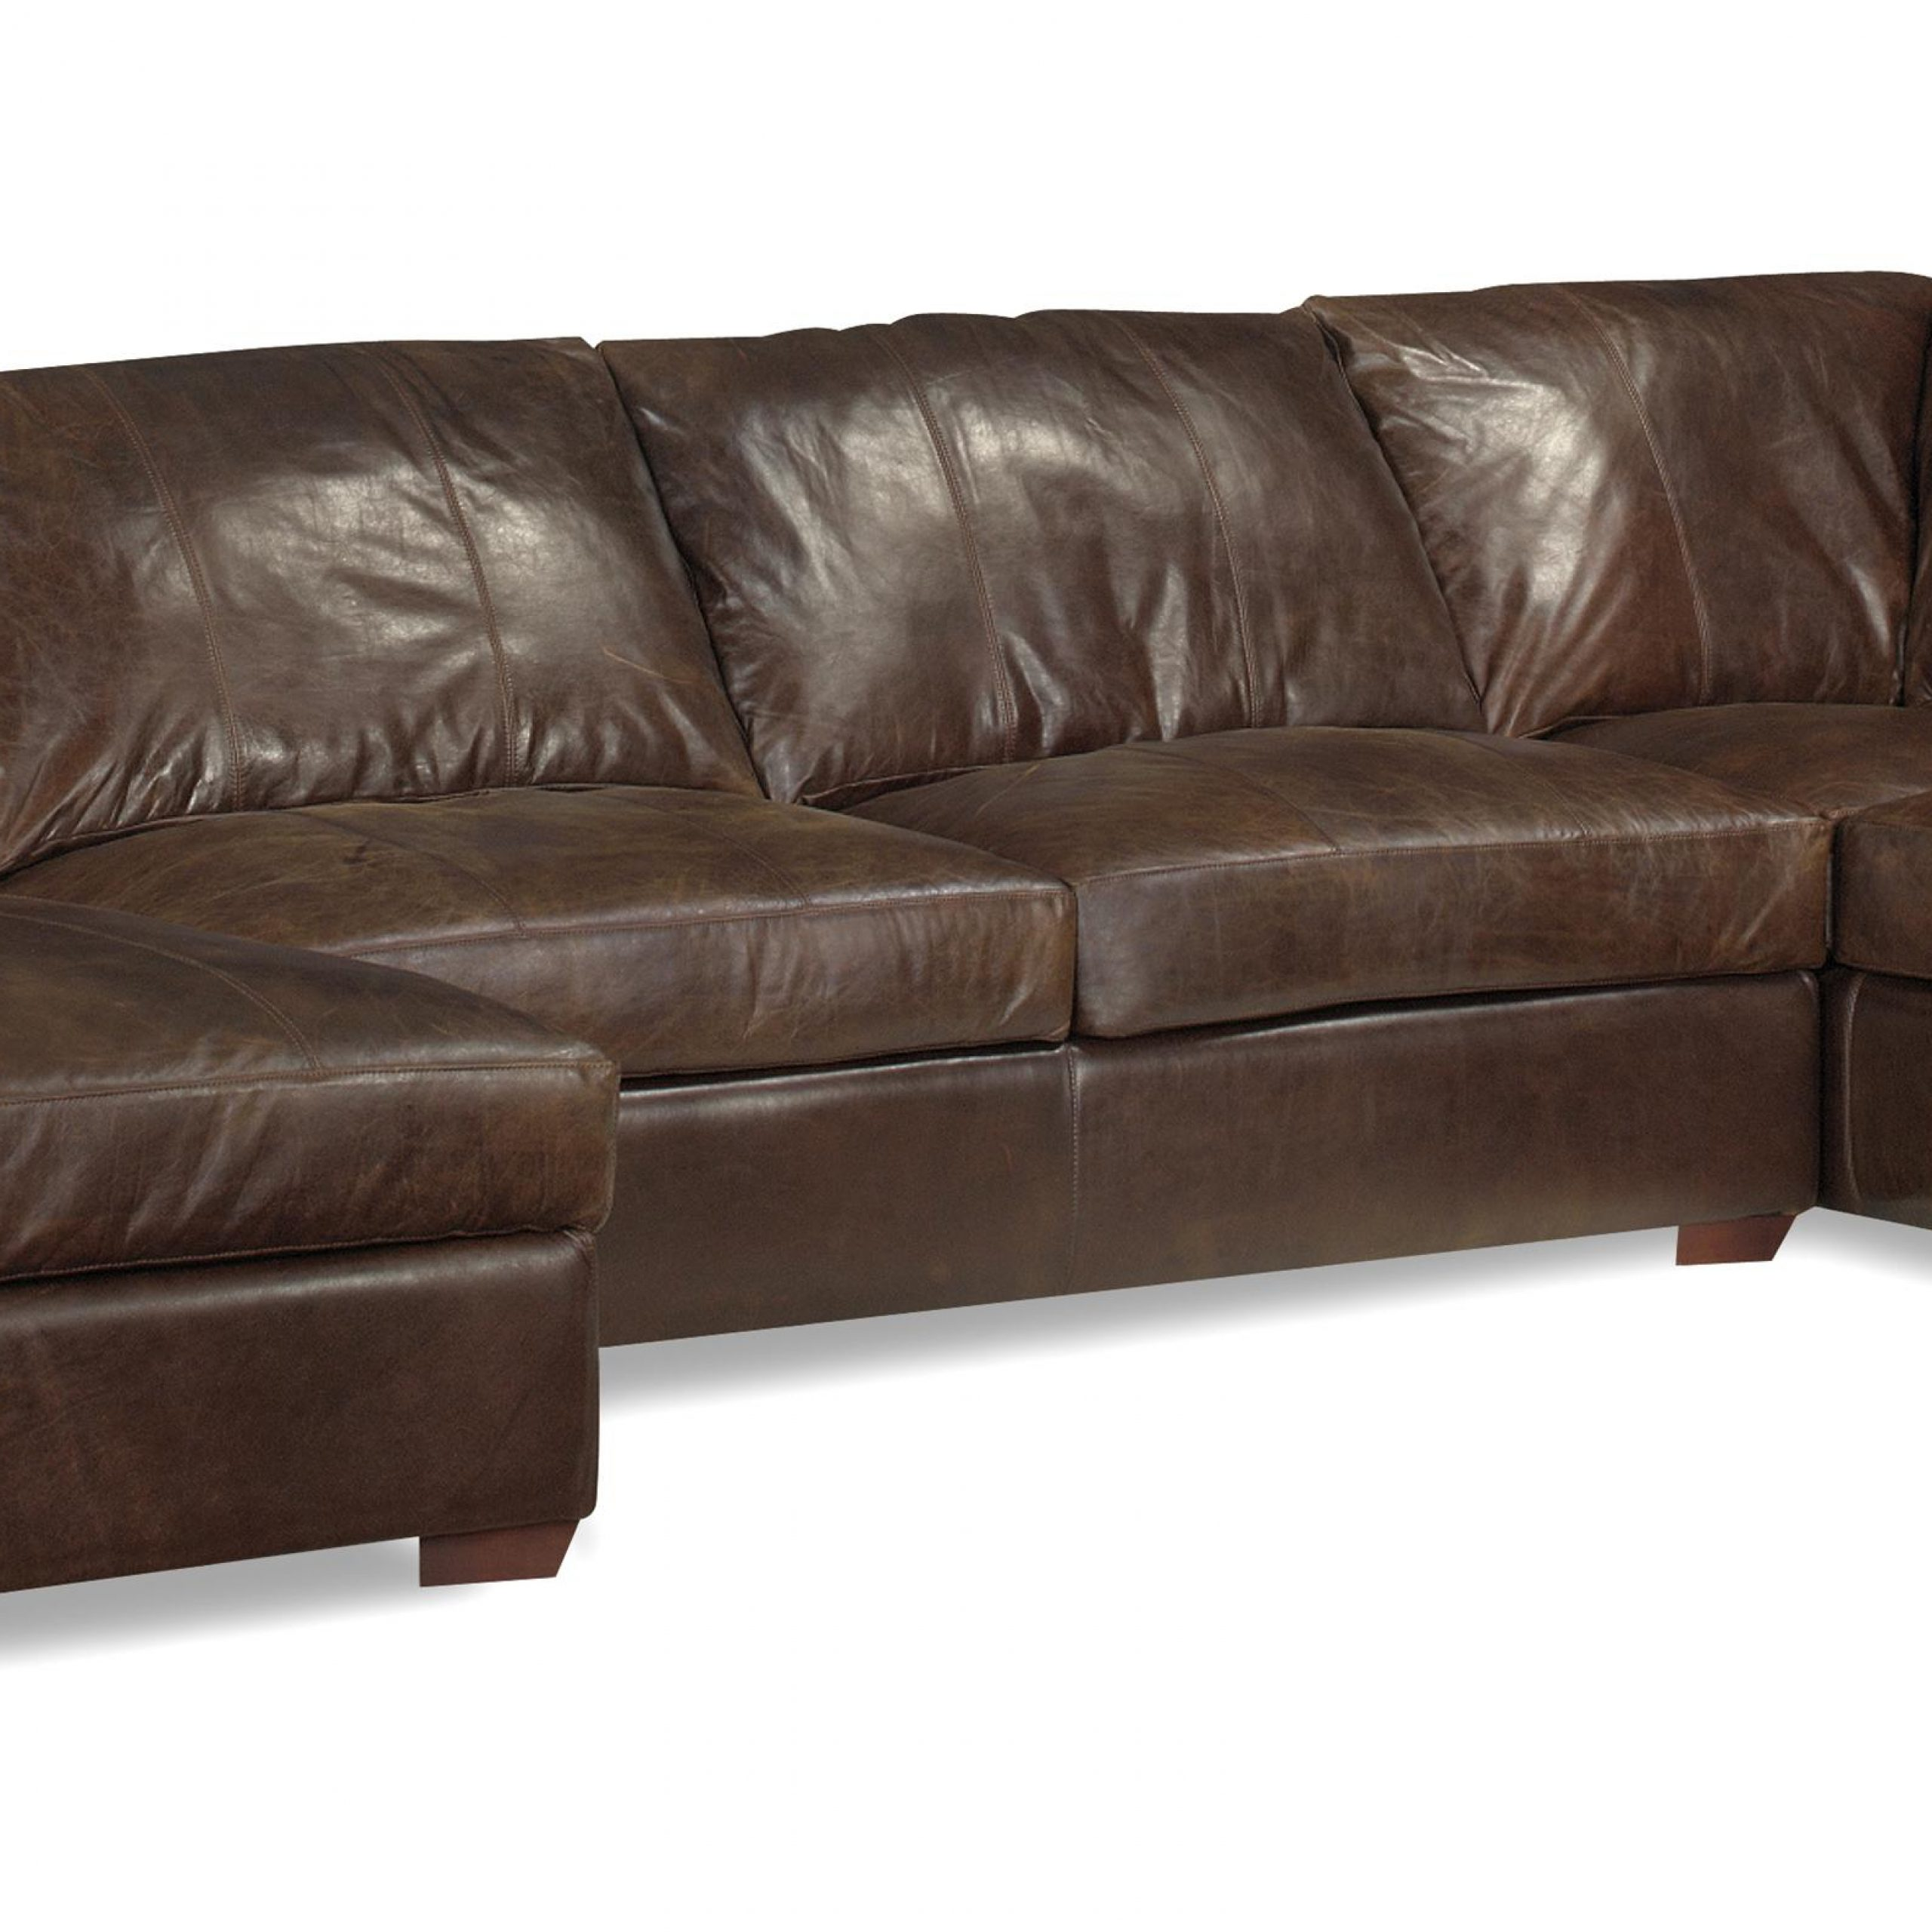 3Pc Miles Leather Sectional Sofas With Chaise With Regard To 2018 Leather Chaise Sectional Sofa Abbyson Tuscan Top Grain (View 5 of 25)